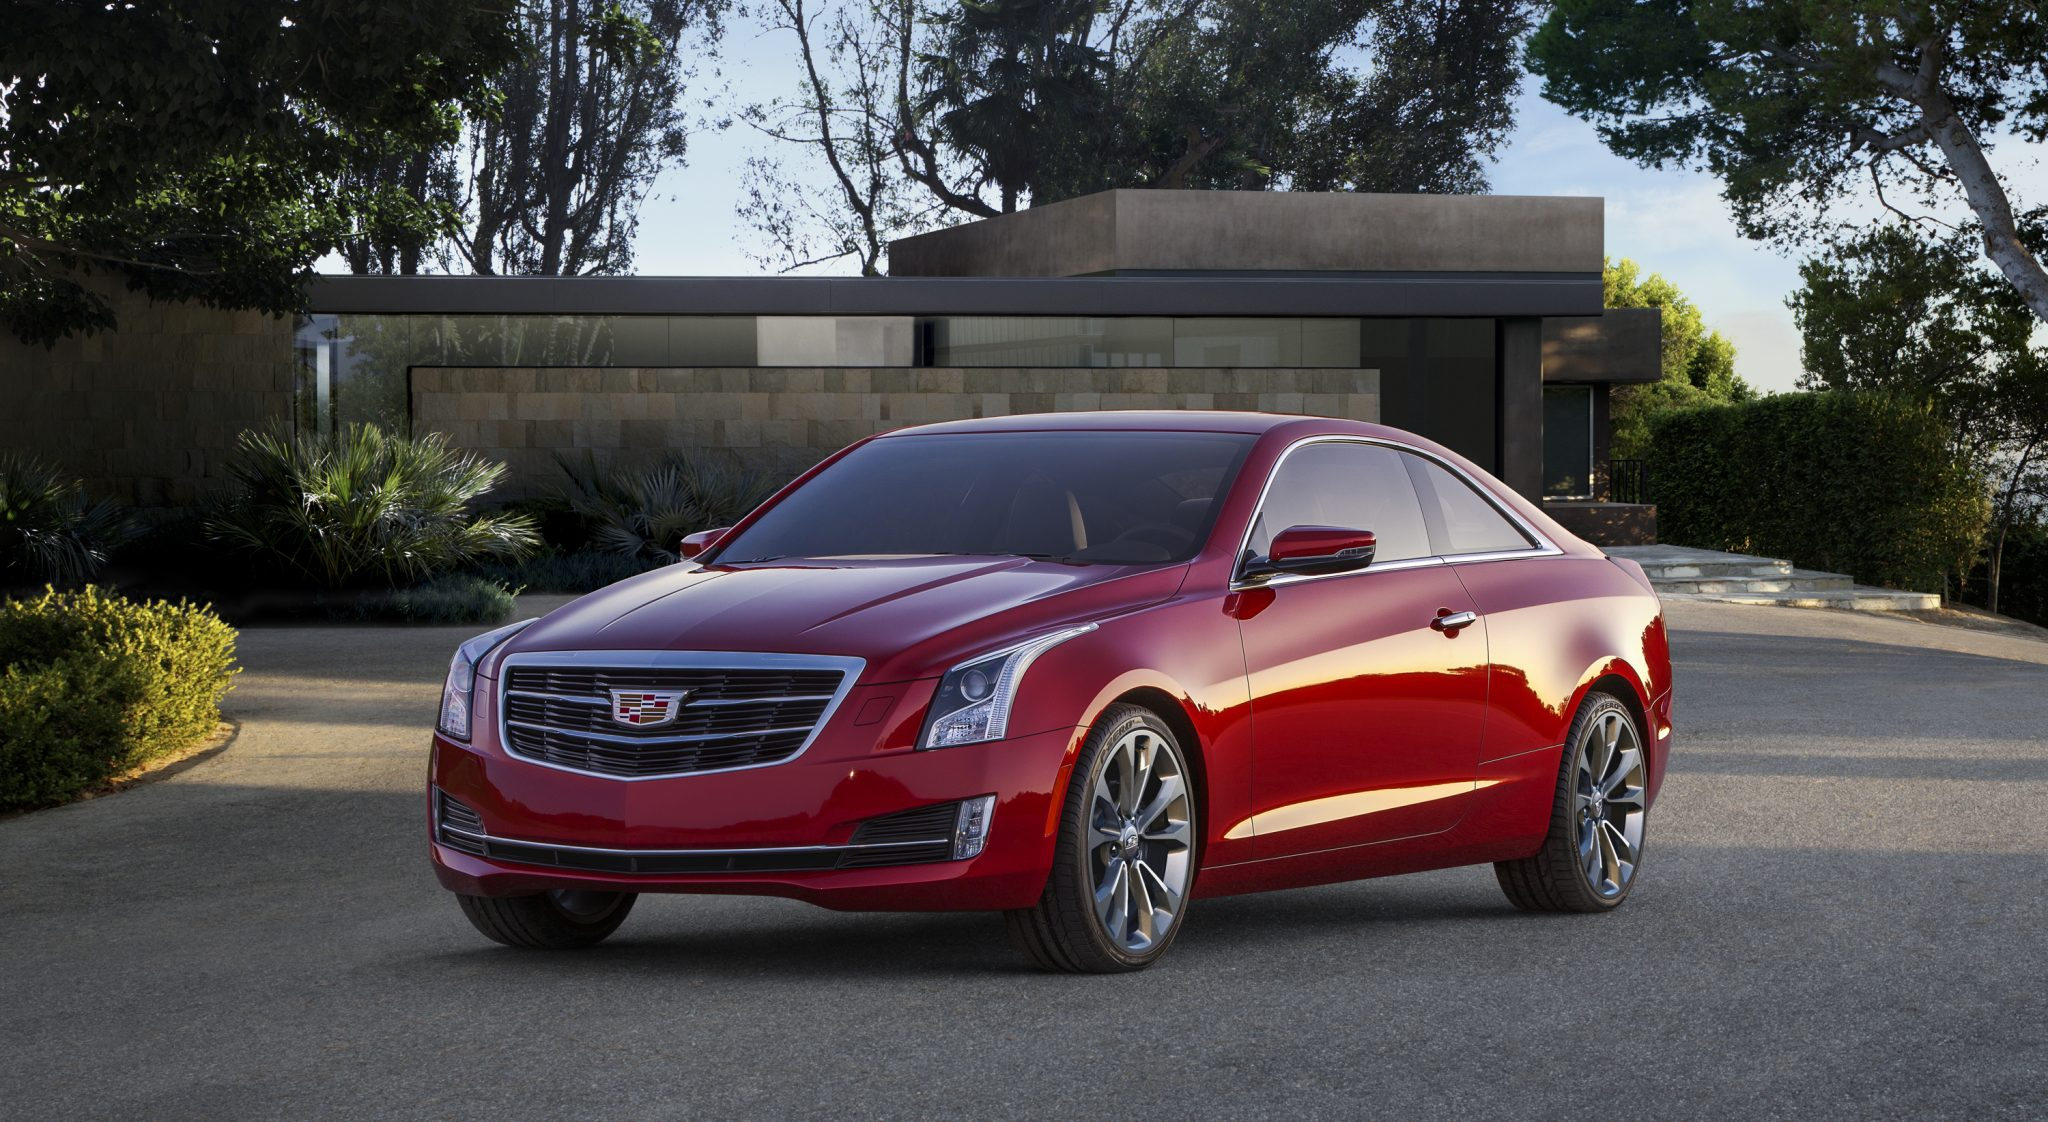 Steering for the 2015 Cadillac ATS Enhanced by ZF Lenksysteme GmbH